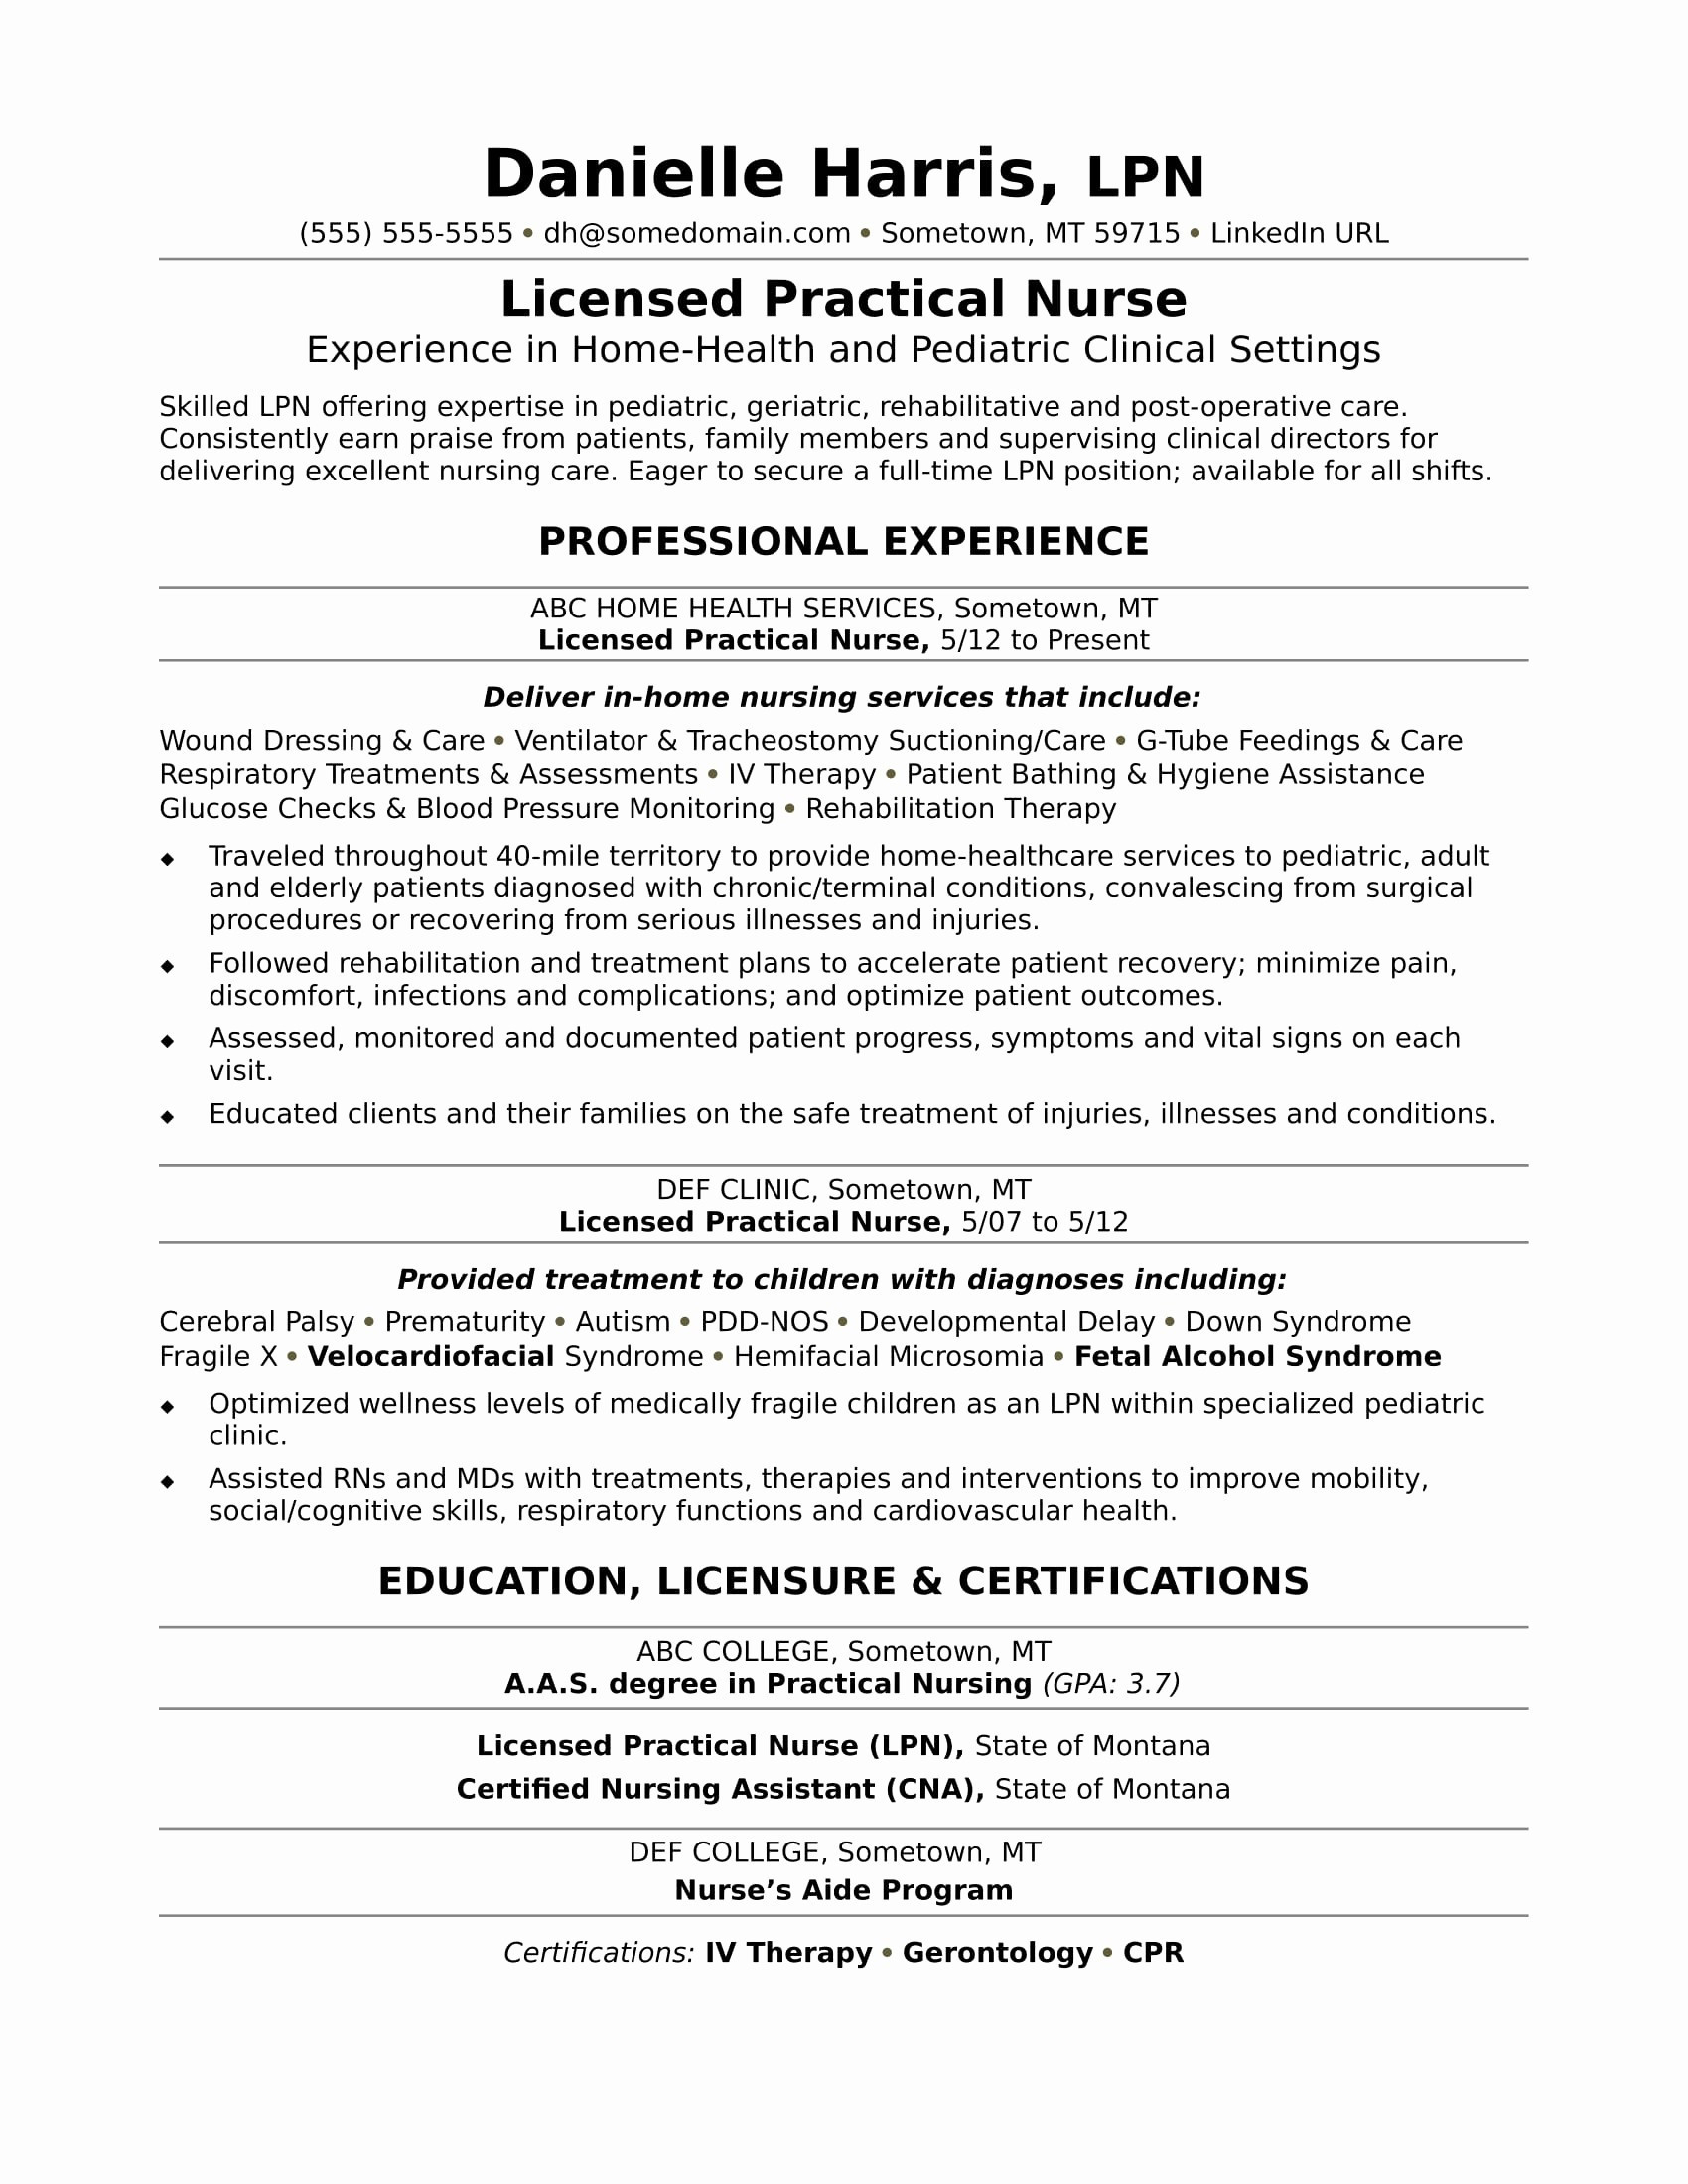 New Graduate Nurse Resume Template - Free Cv Samples format and Templates Page 332 Of 353